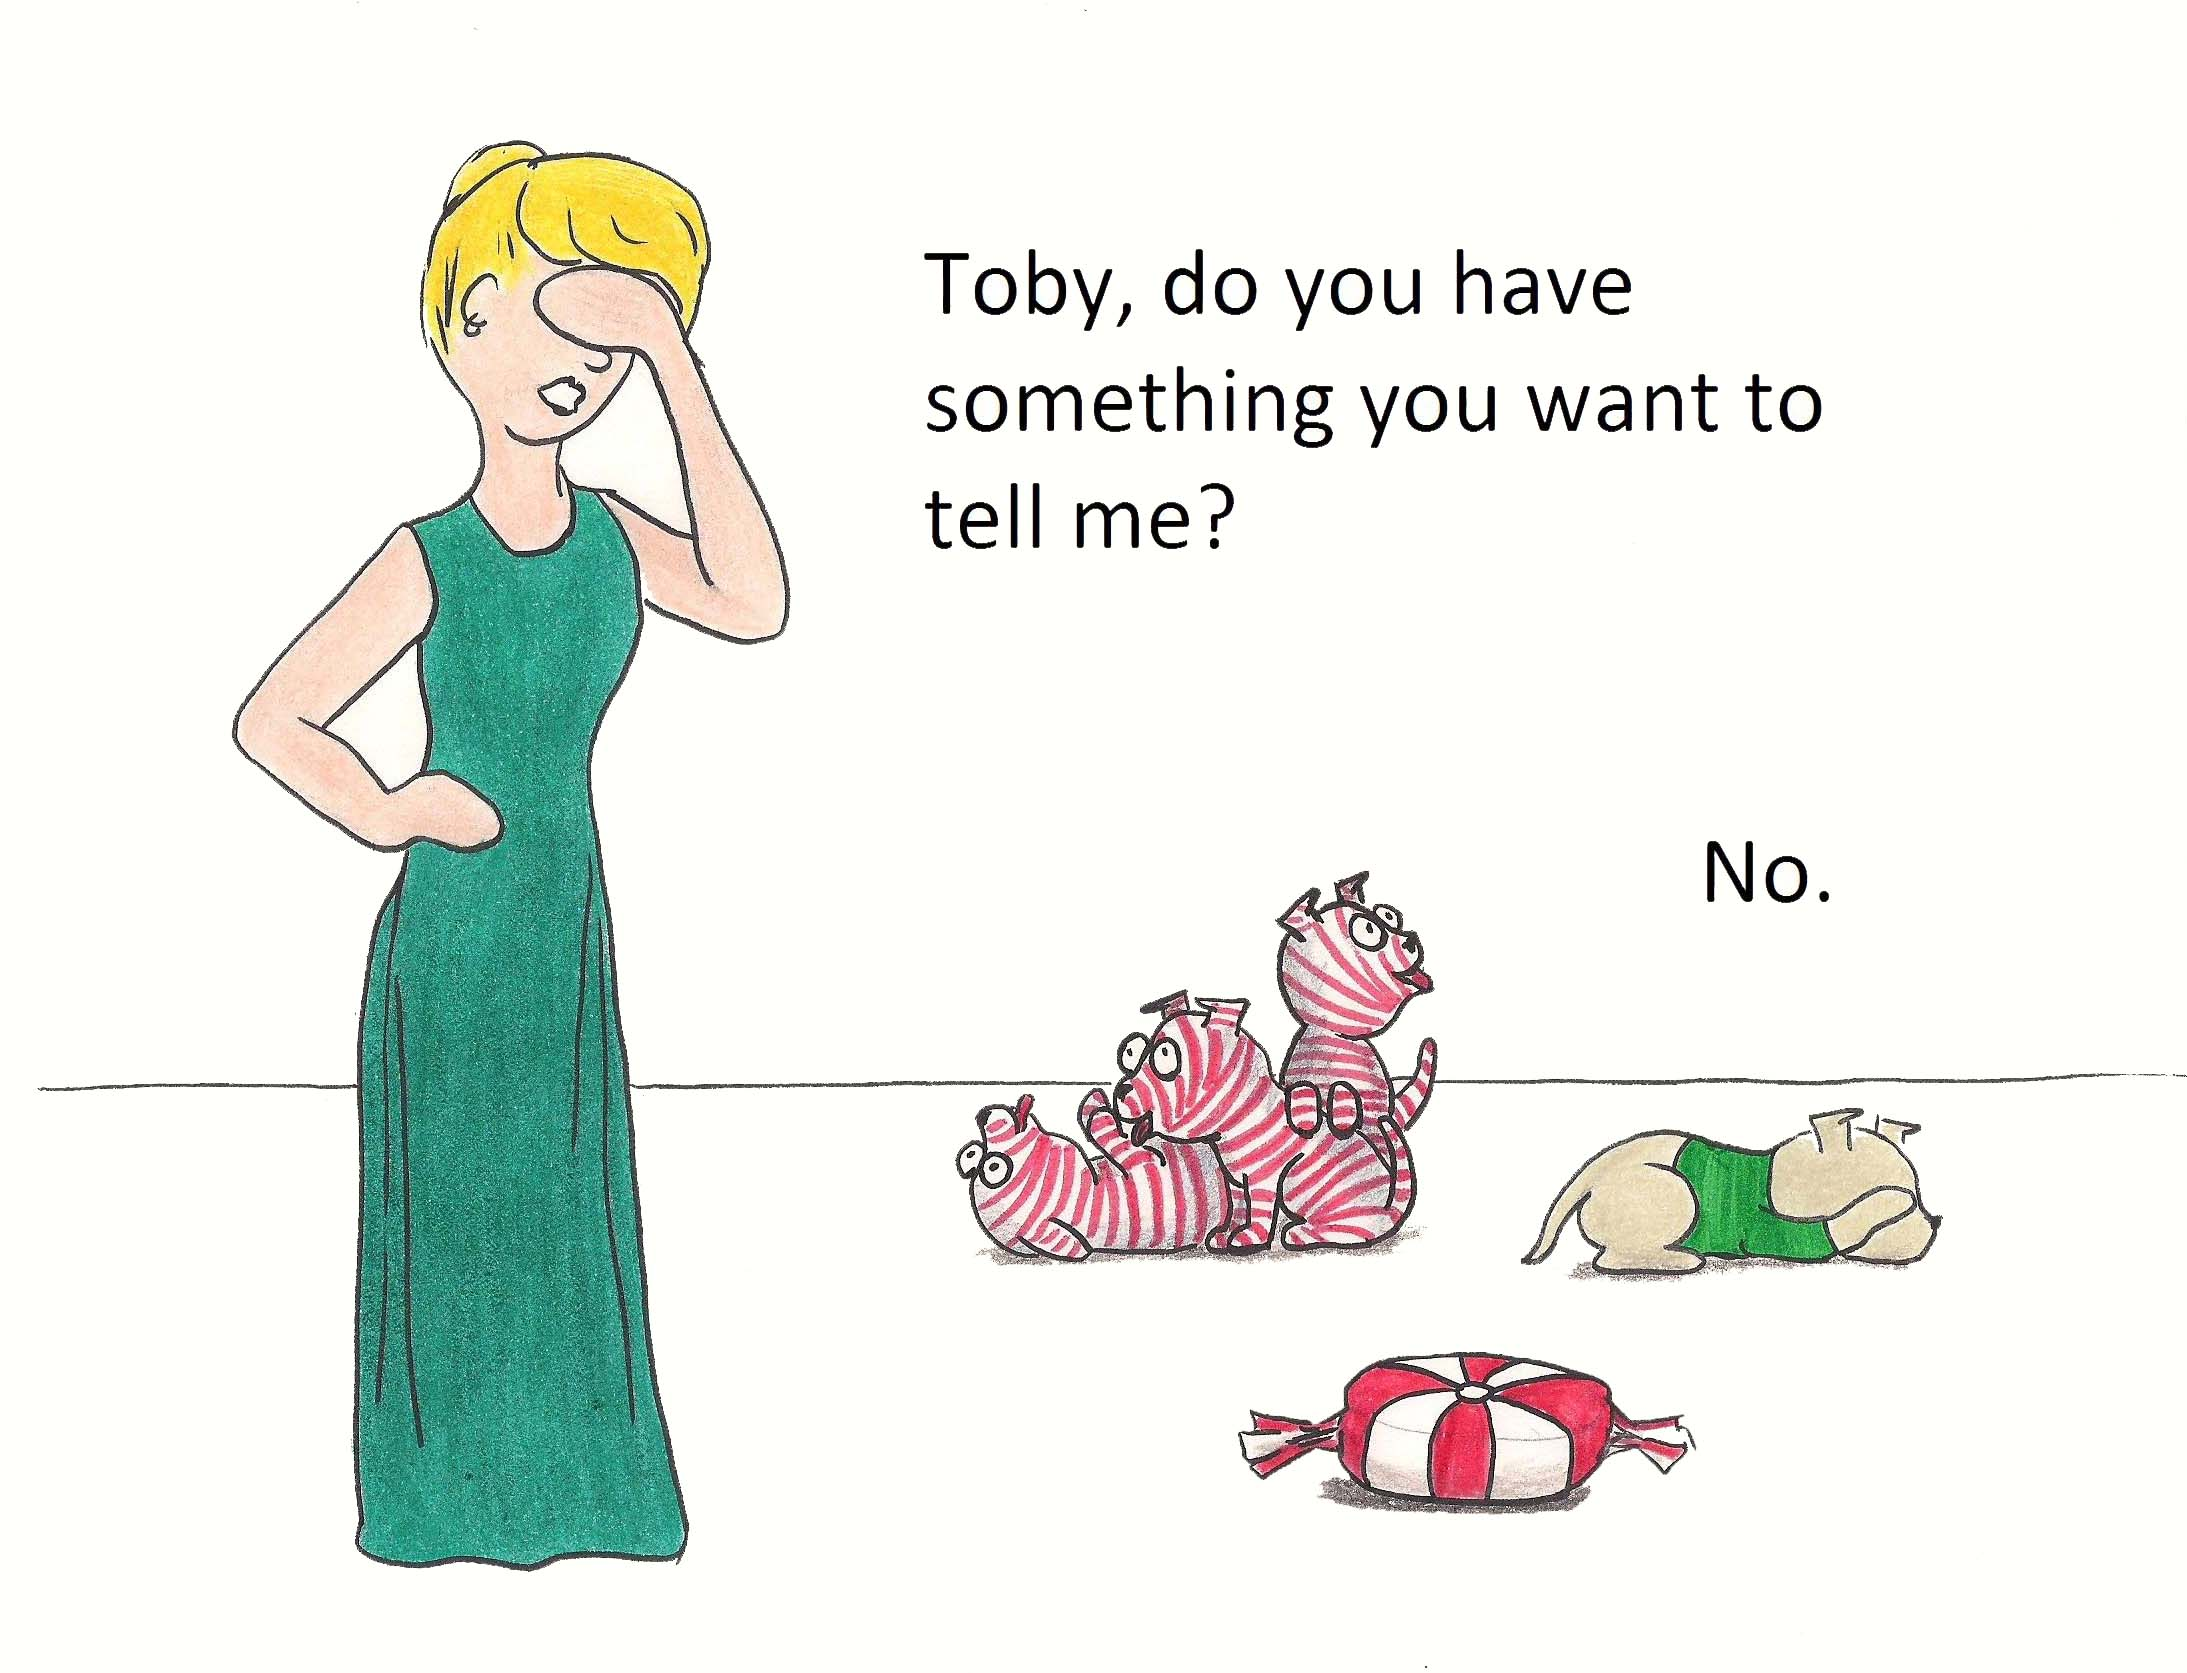 Toby, do you have something you want to tell me? No.